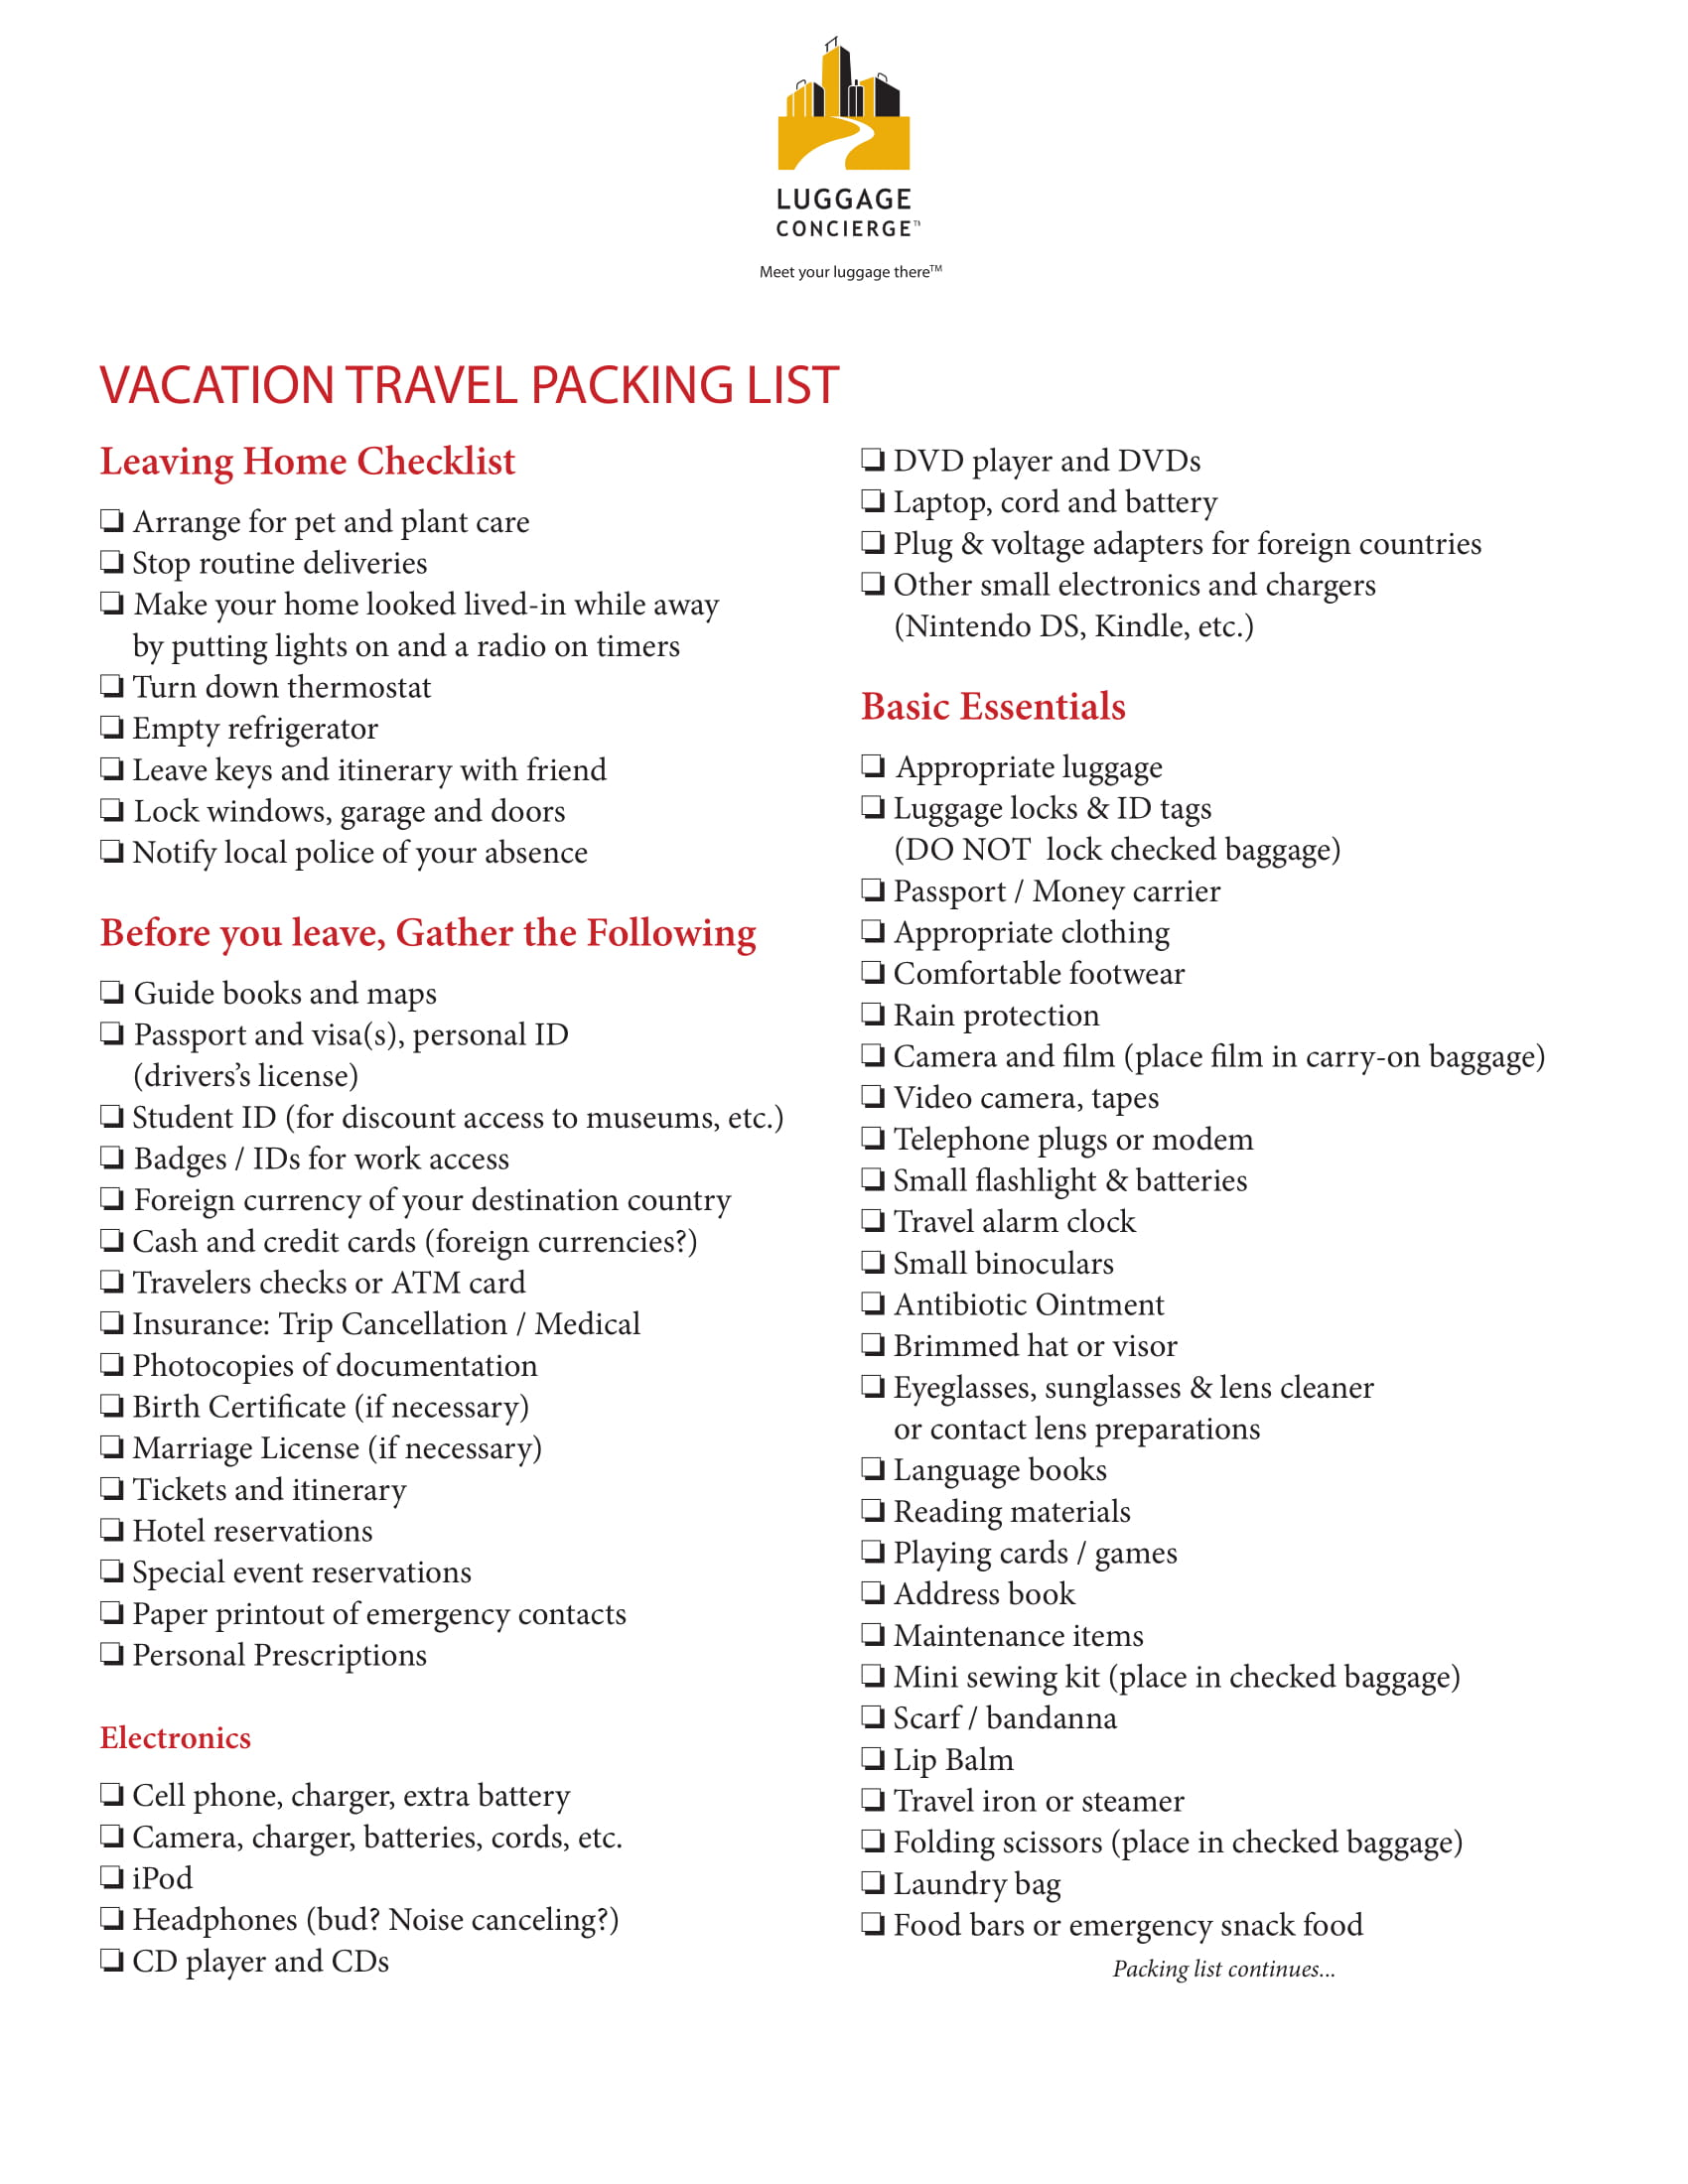 vacation travel packing list example